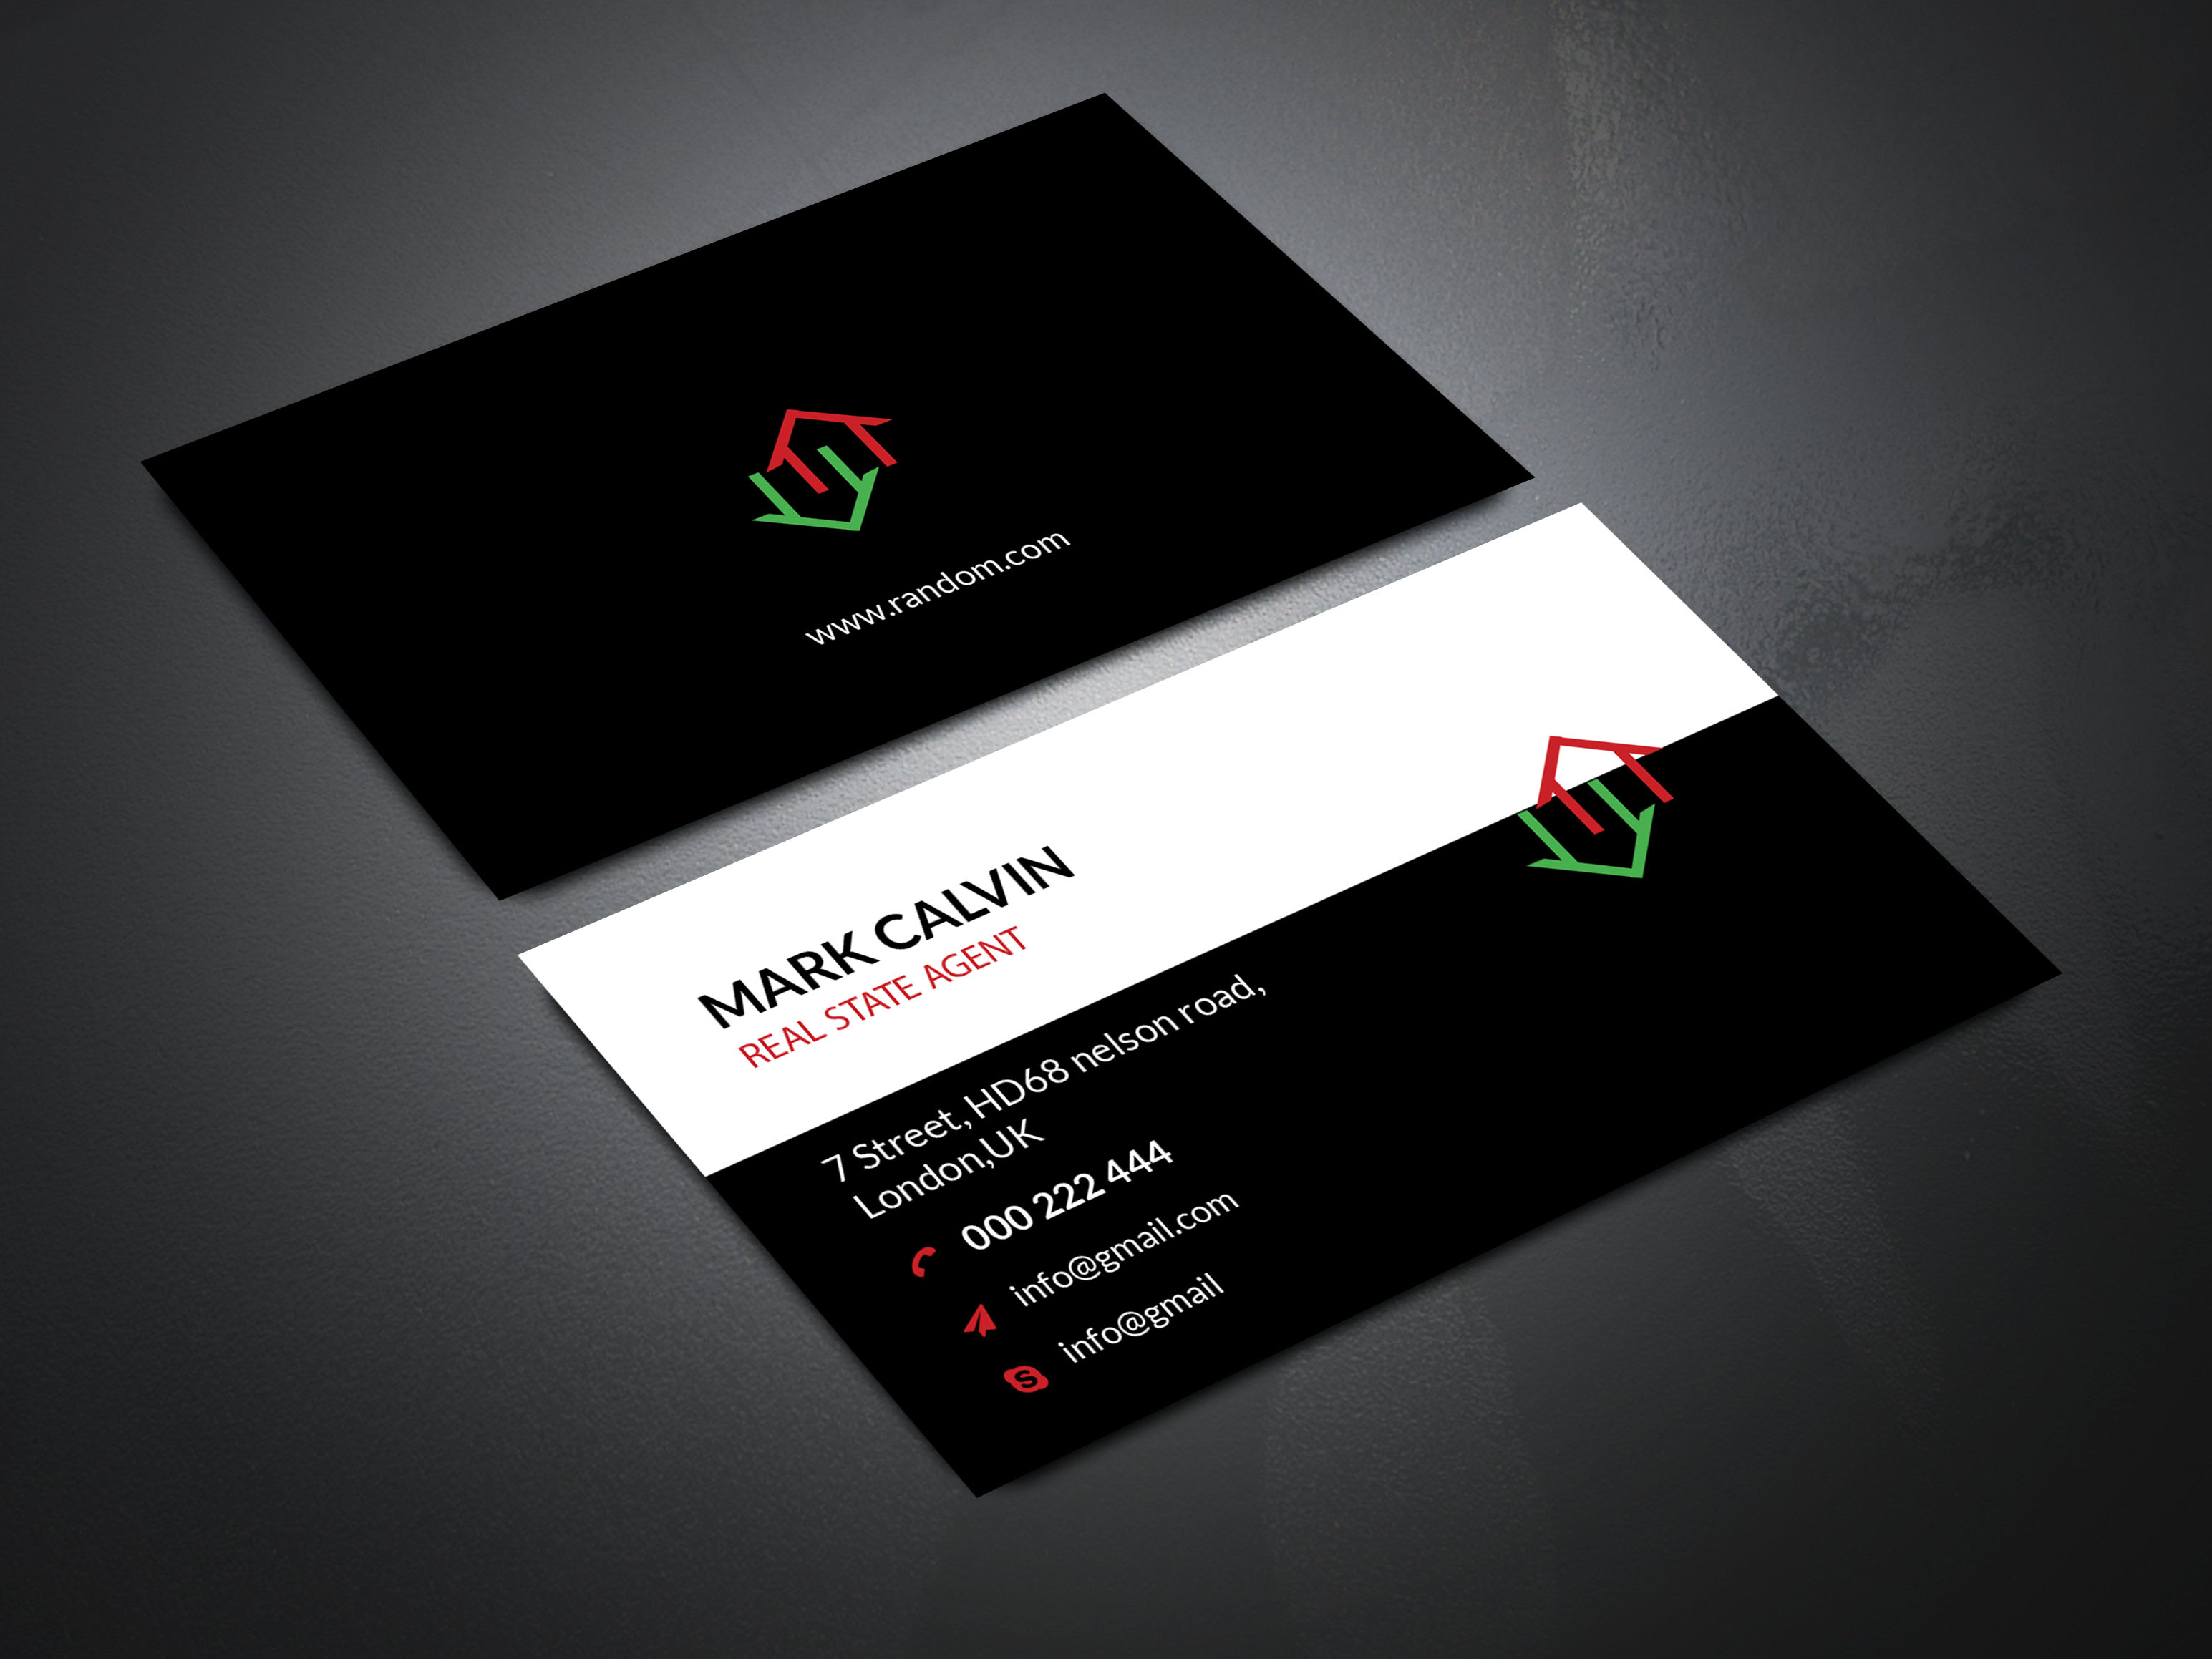 This is a business card for you and your company.